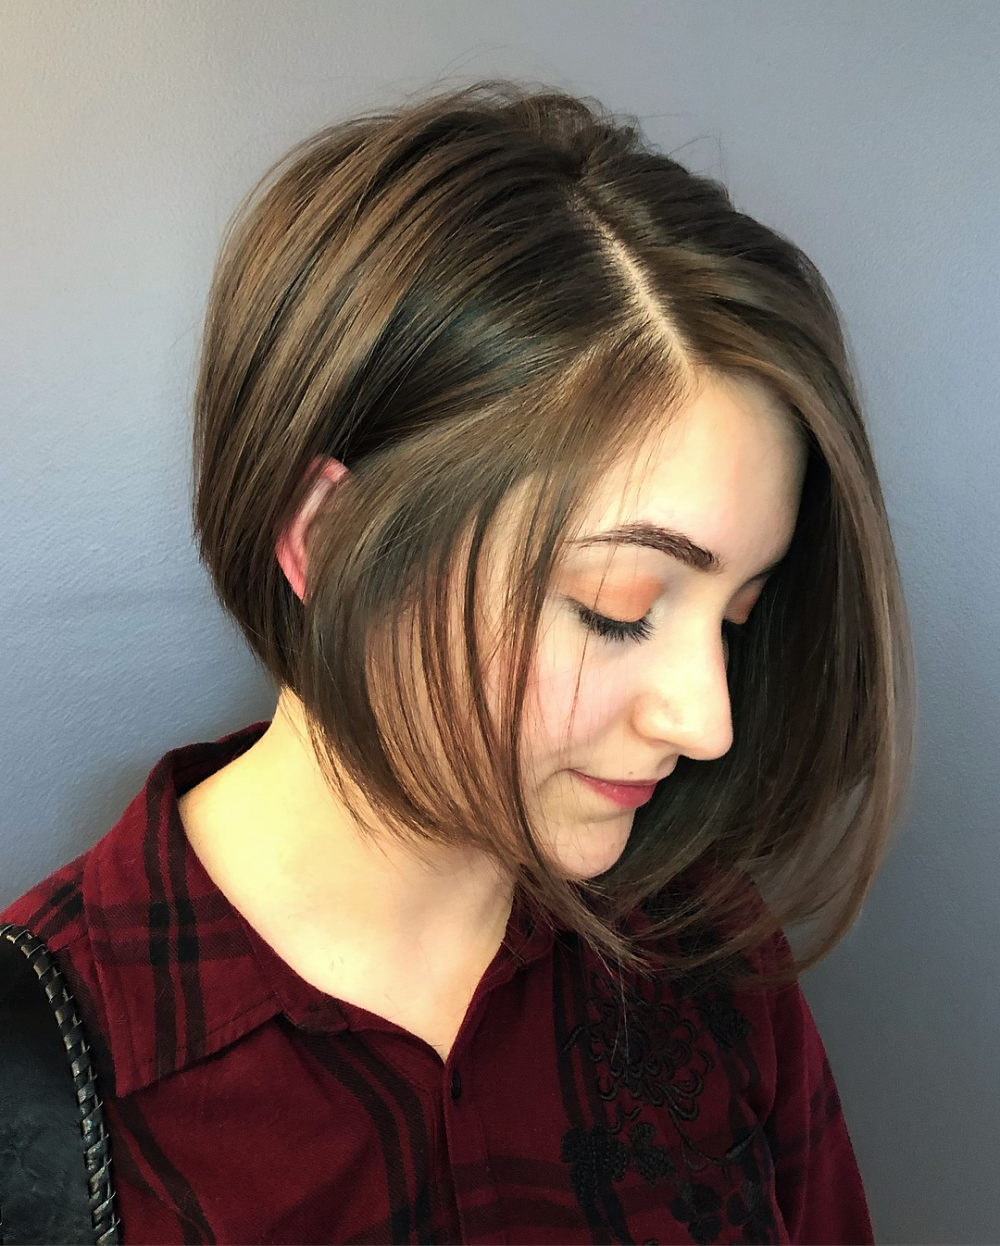 33 Flattering Short Hairstyles For Round Faces In 2018 Inside Short Haircuts For Women With Round Faces (View 7 of 25)